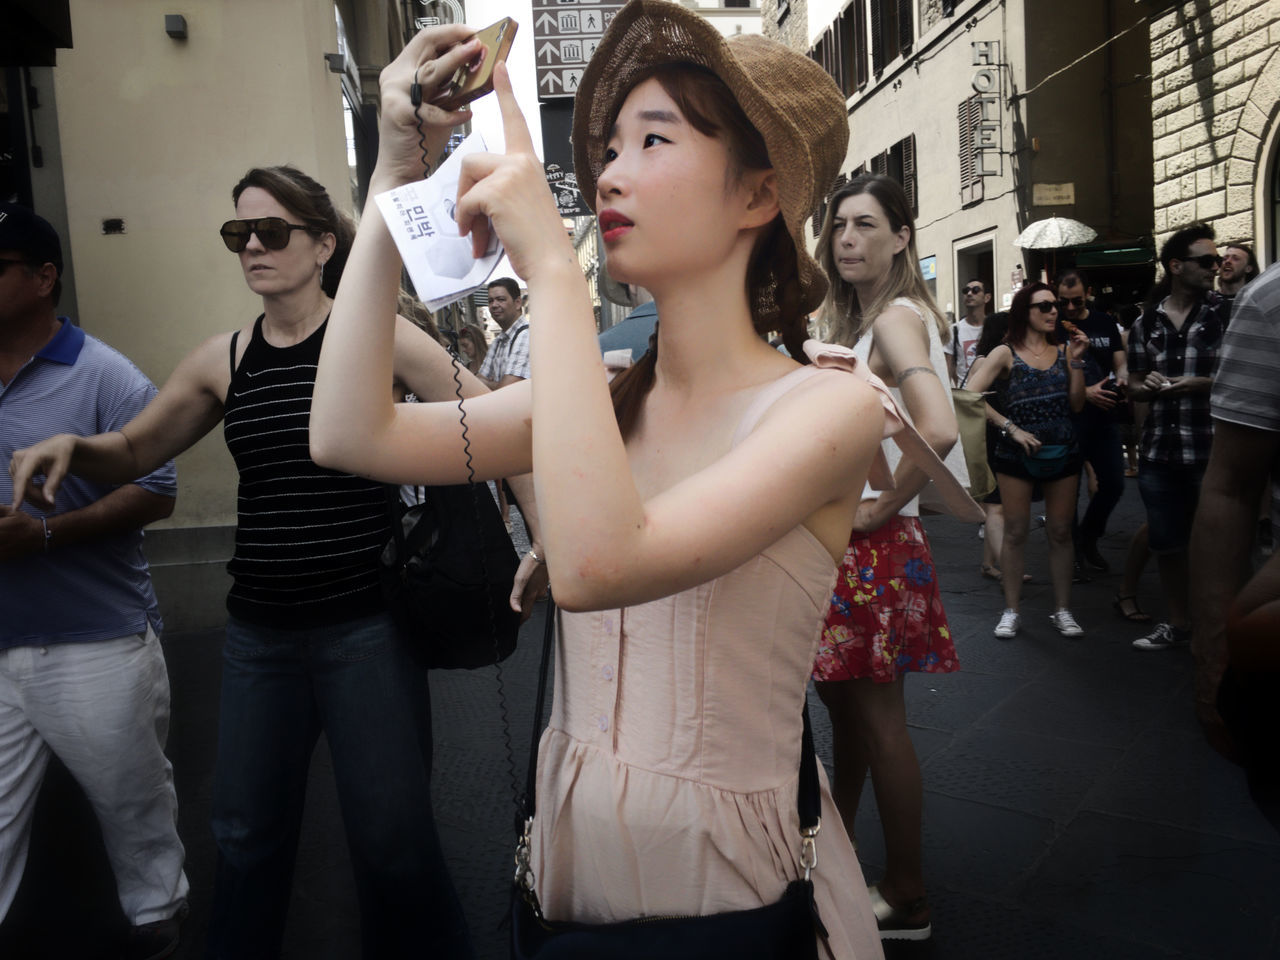 The tourists in the streets of Florence. Candid Firenze Firenze, Italy Florence Hat Hats Heat - Temperature Passing By People People And Places People In The Streets People Photography People Watching Street Photography Summer Summertime Tourism Tourists Tourists In Florence Woman